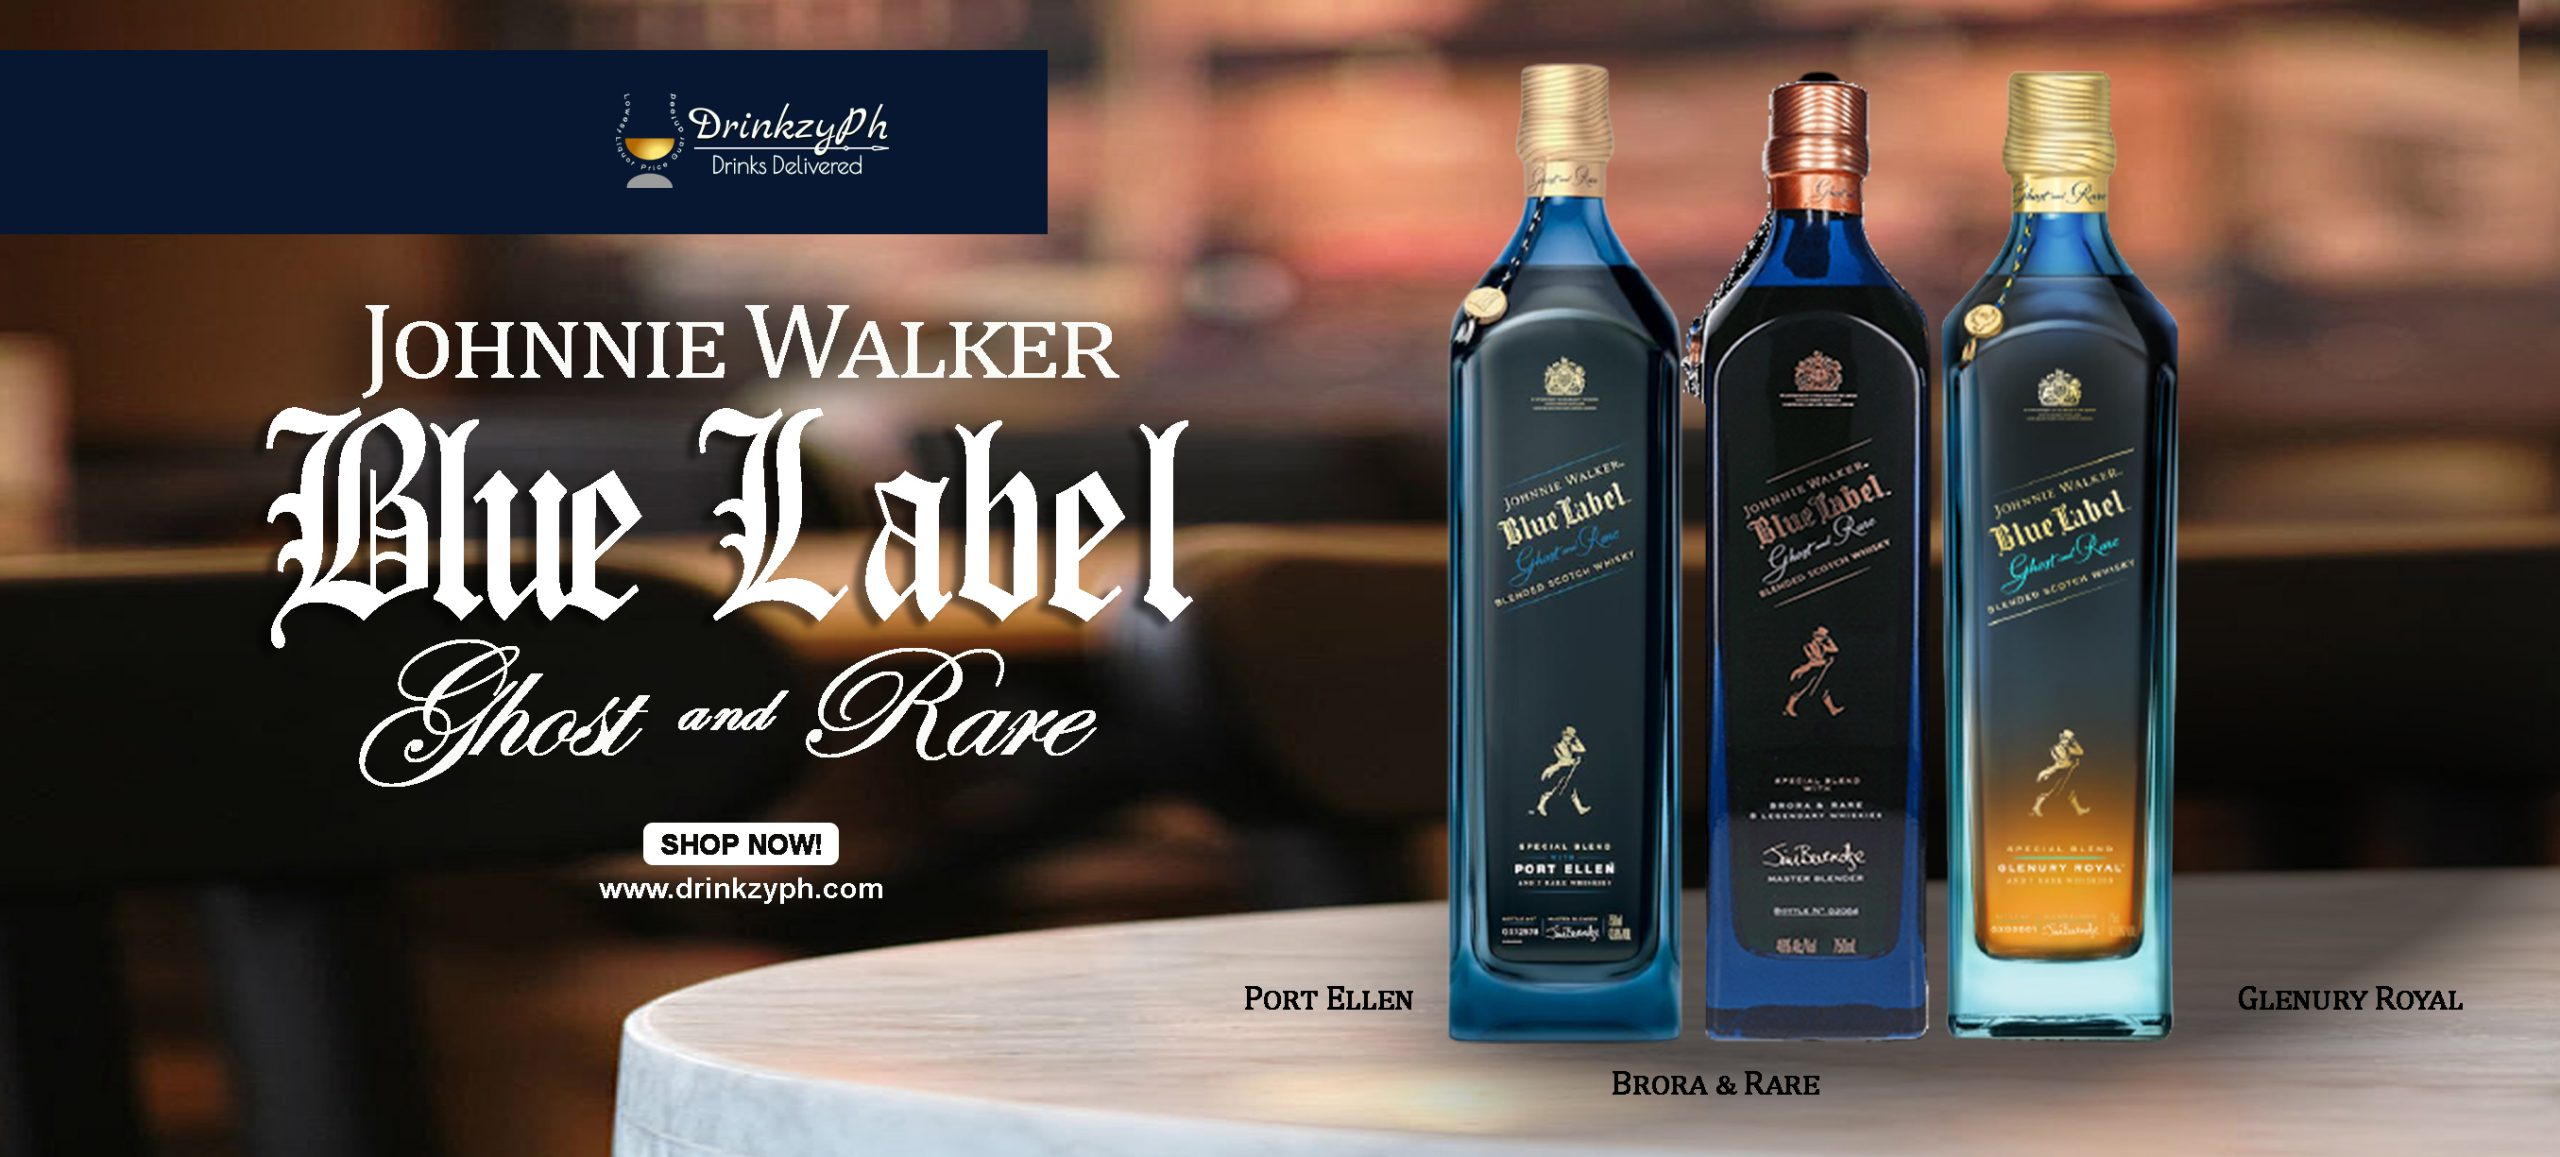 BLUE LABEL GHOST RARE COLLECTION SITE